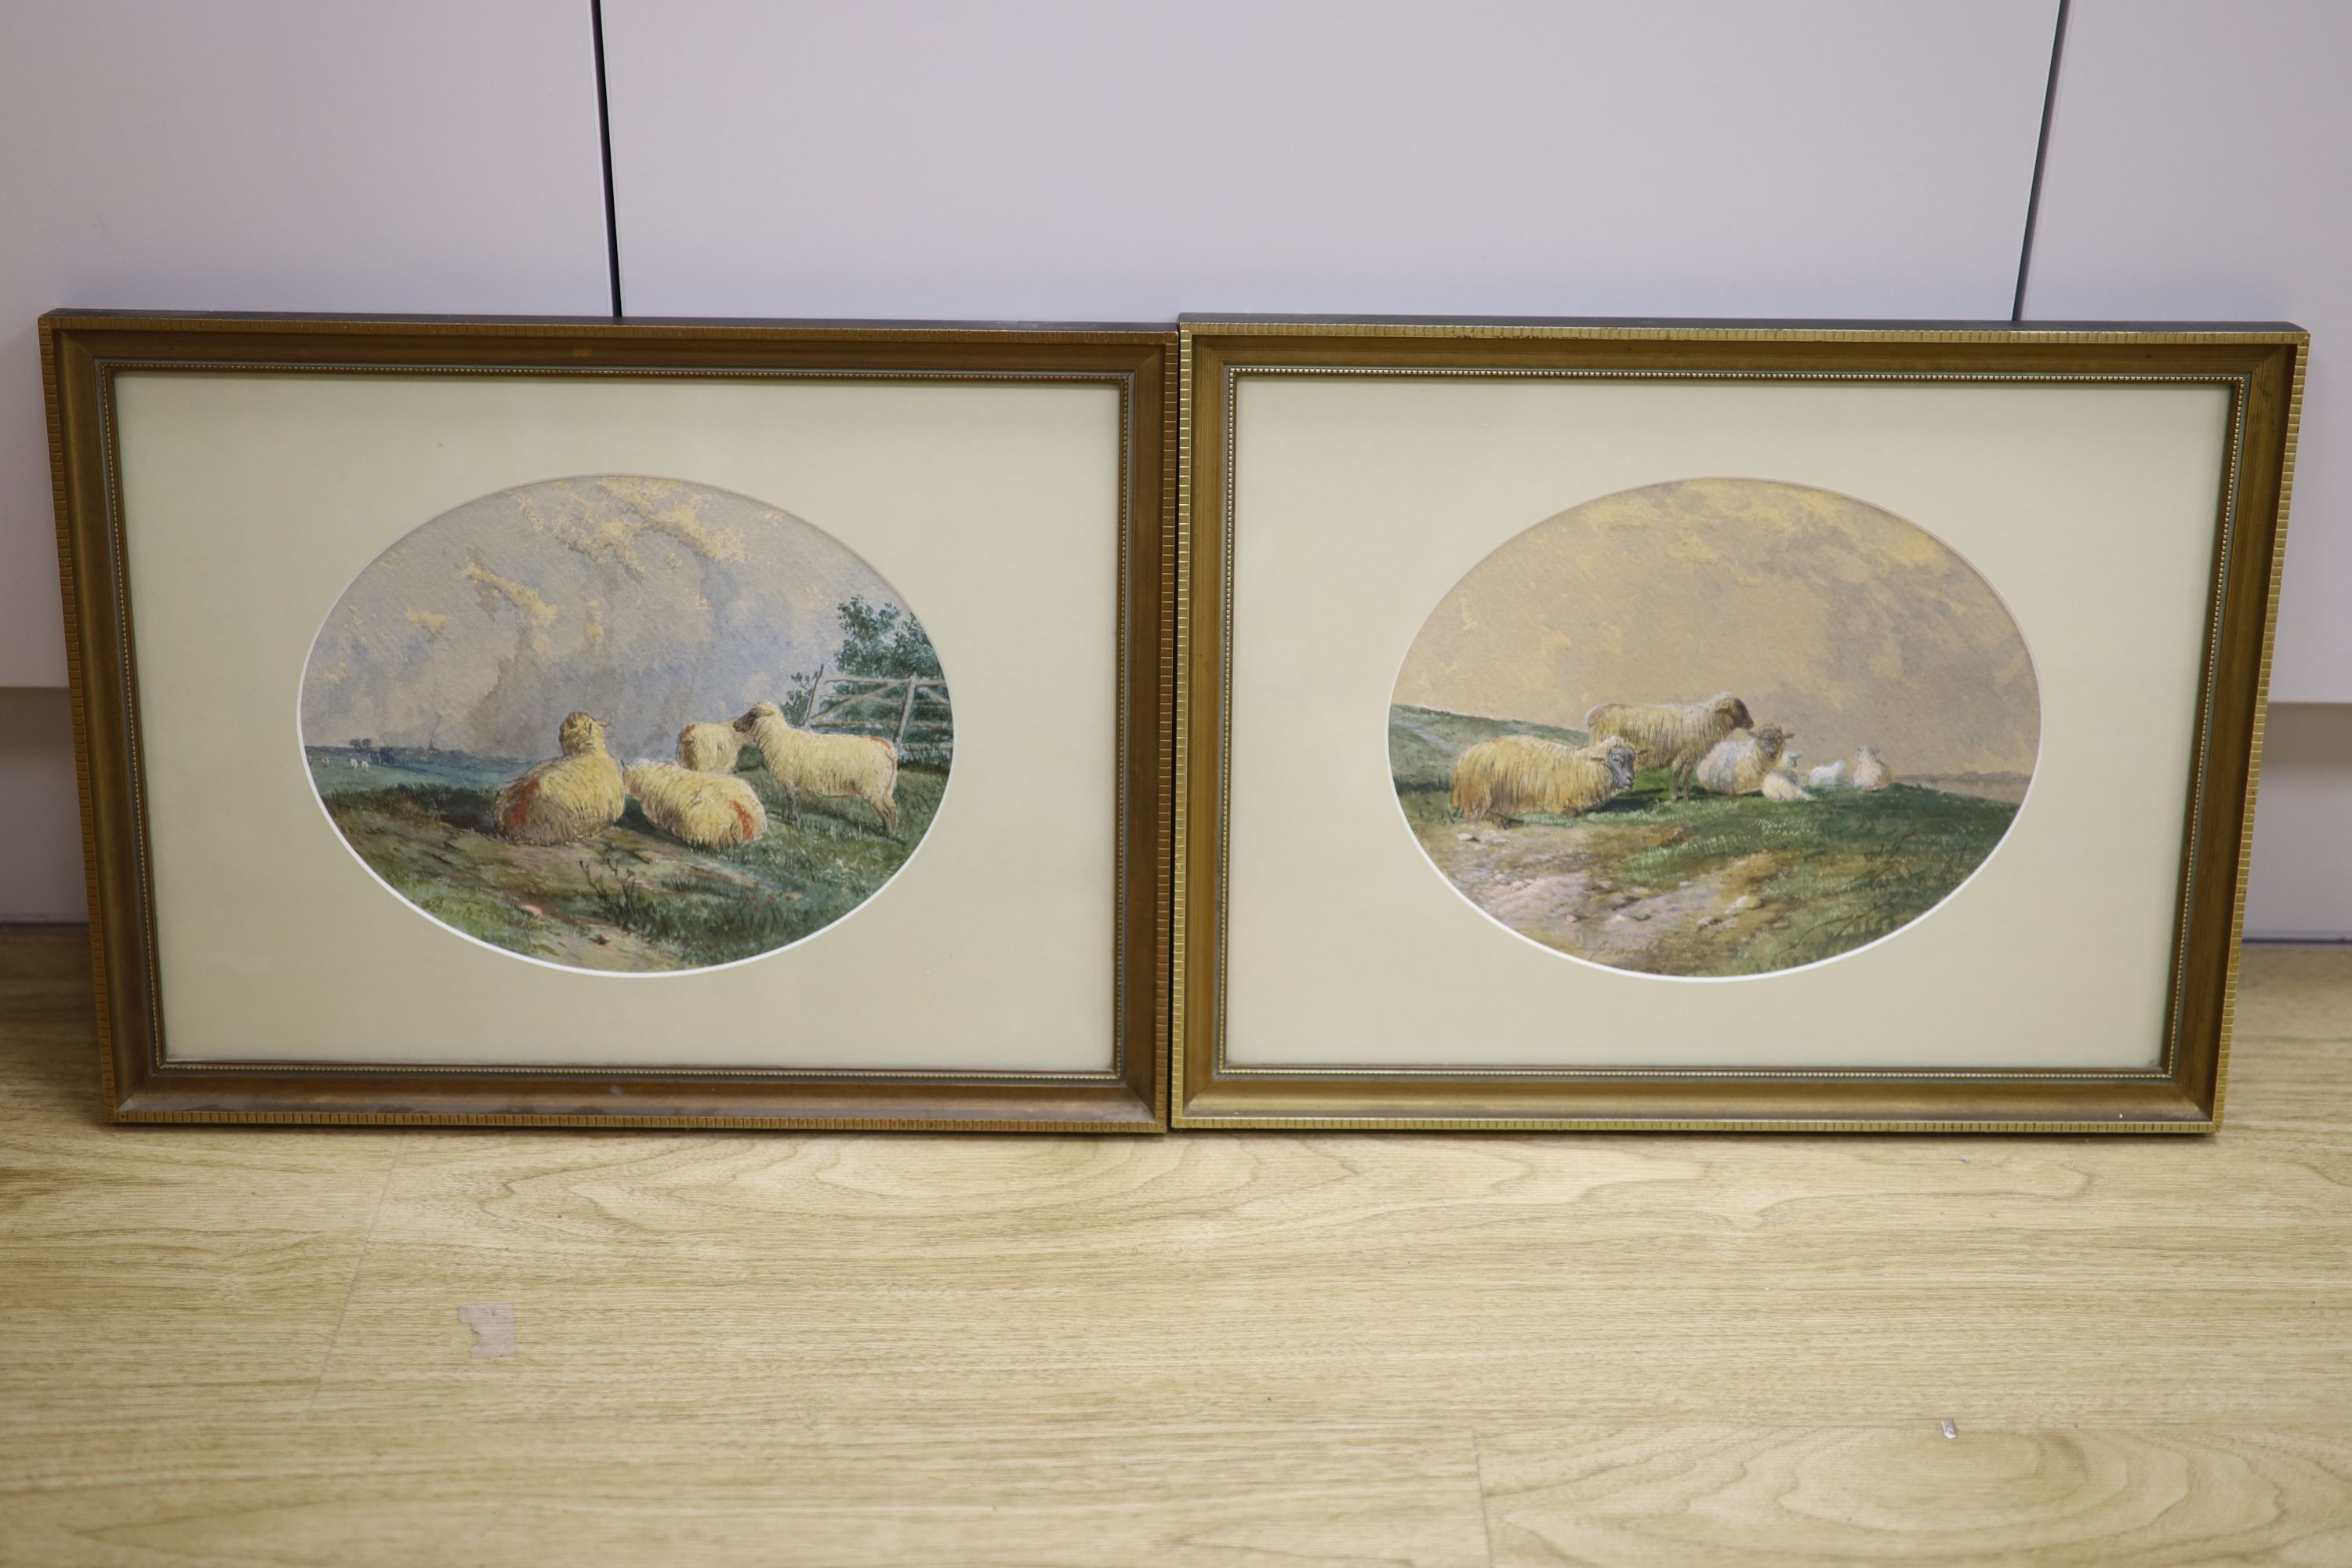 J.D. (19thC), pair of watercolours, Studies of sheep, indistinctly signed, 19 x 24cm